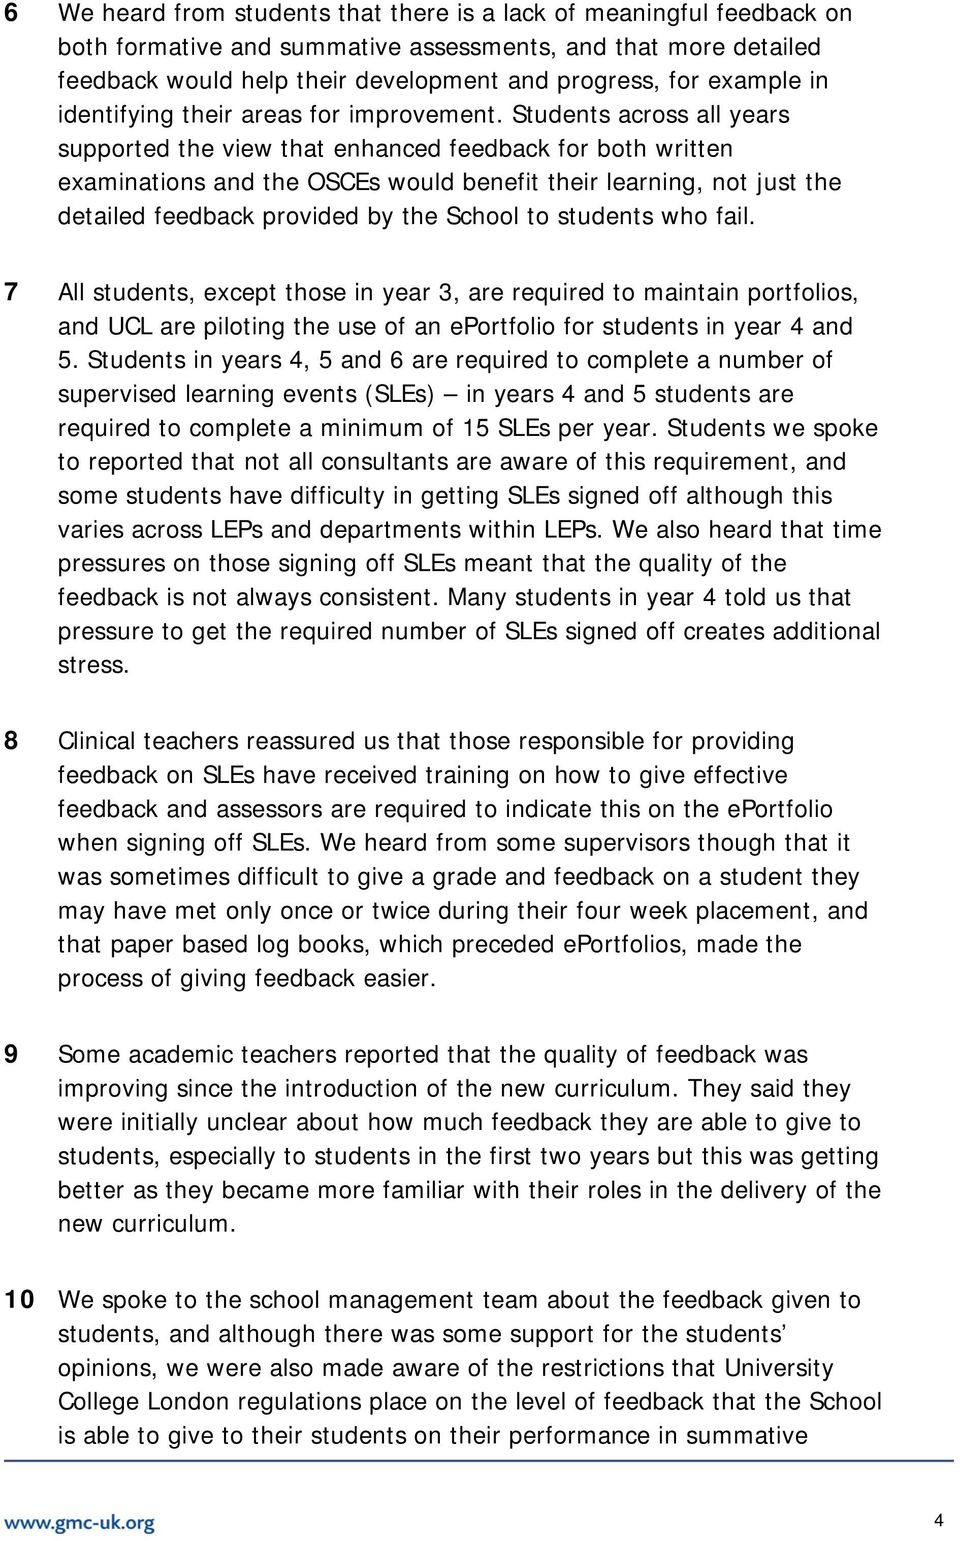 Students across all years supported the view that enhanced feedback for both written examinations and the OSCEs would benefit their learning, not just the detailed feedback provided by the School to